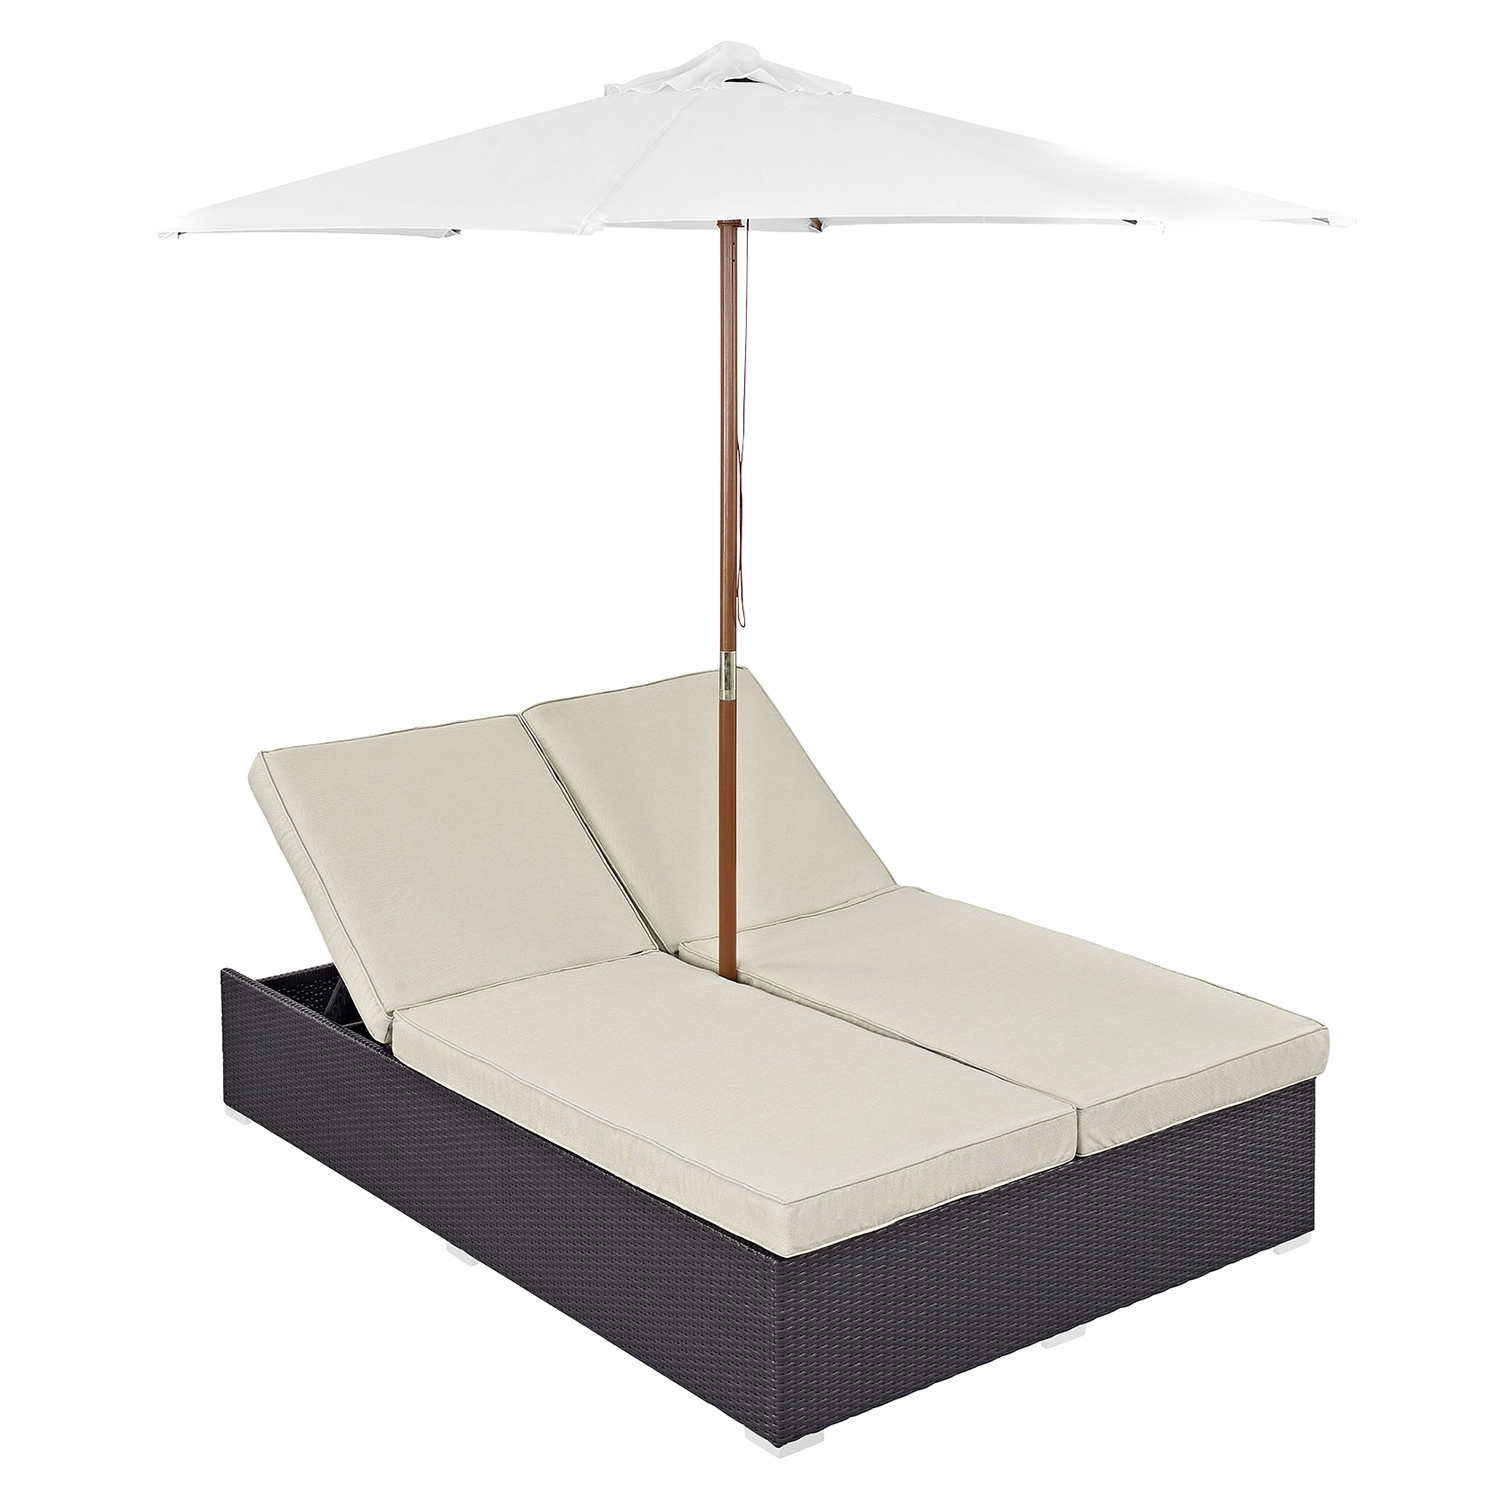 Arrival Outdoor Patio Chaise - EEI-980-EXP